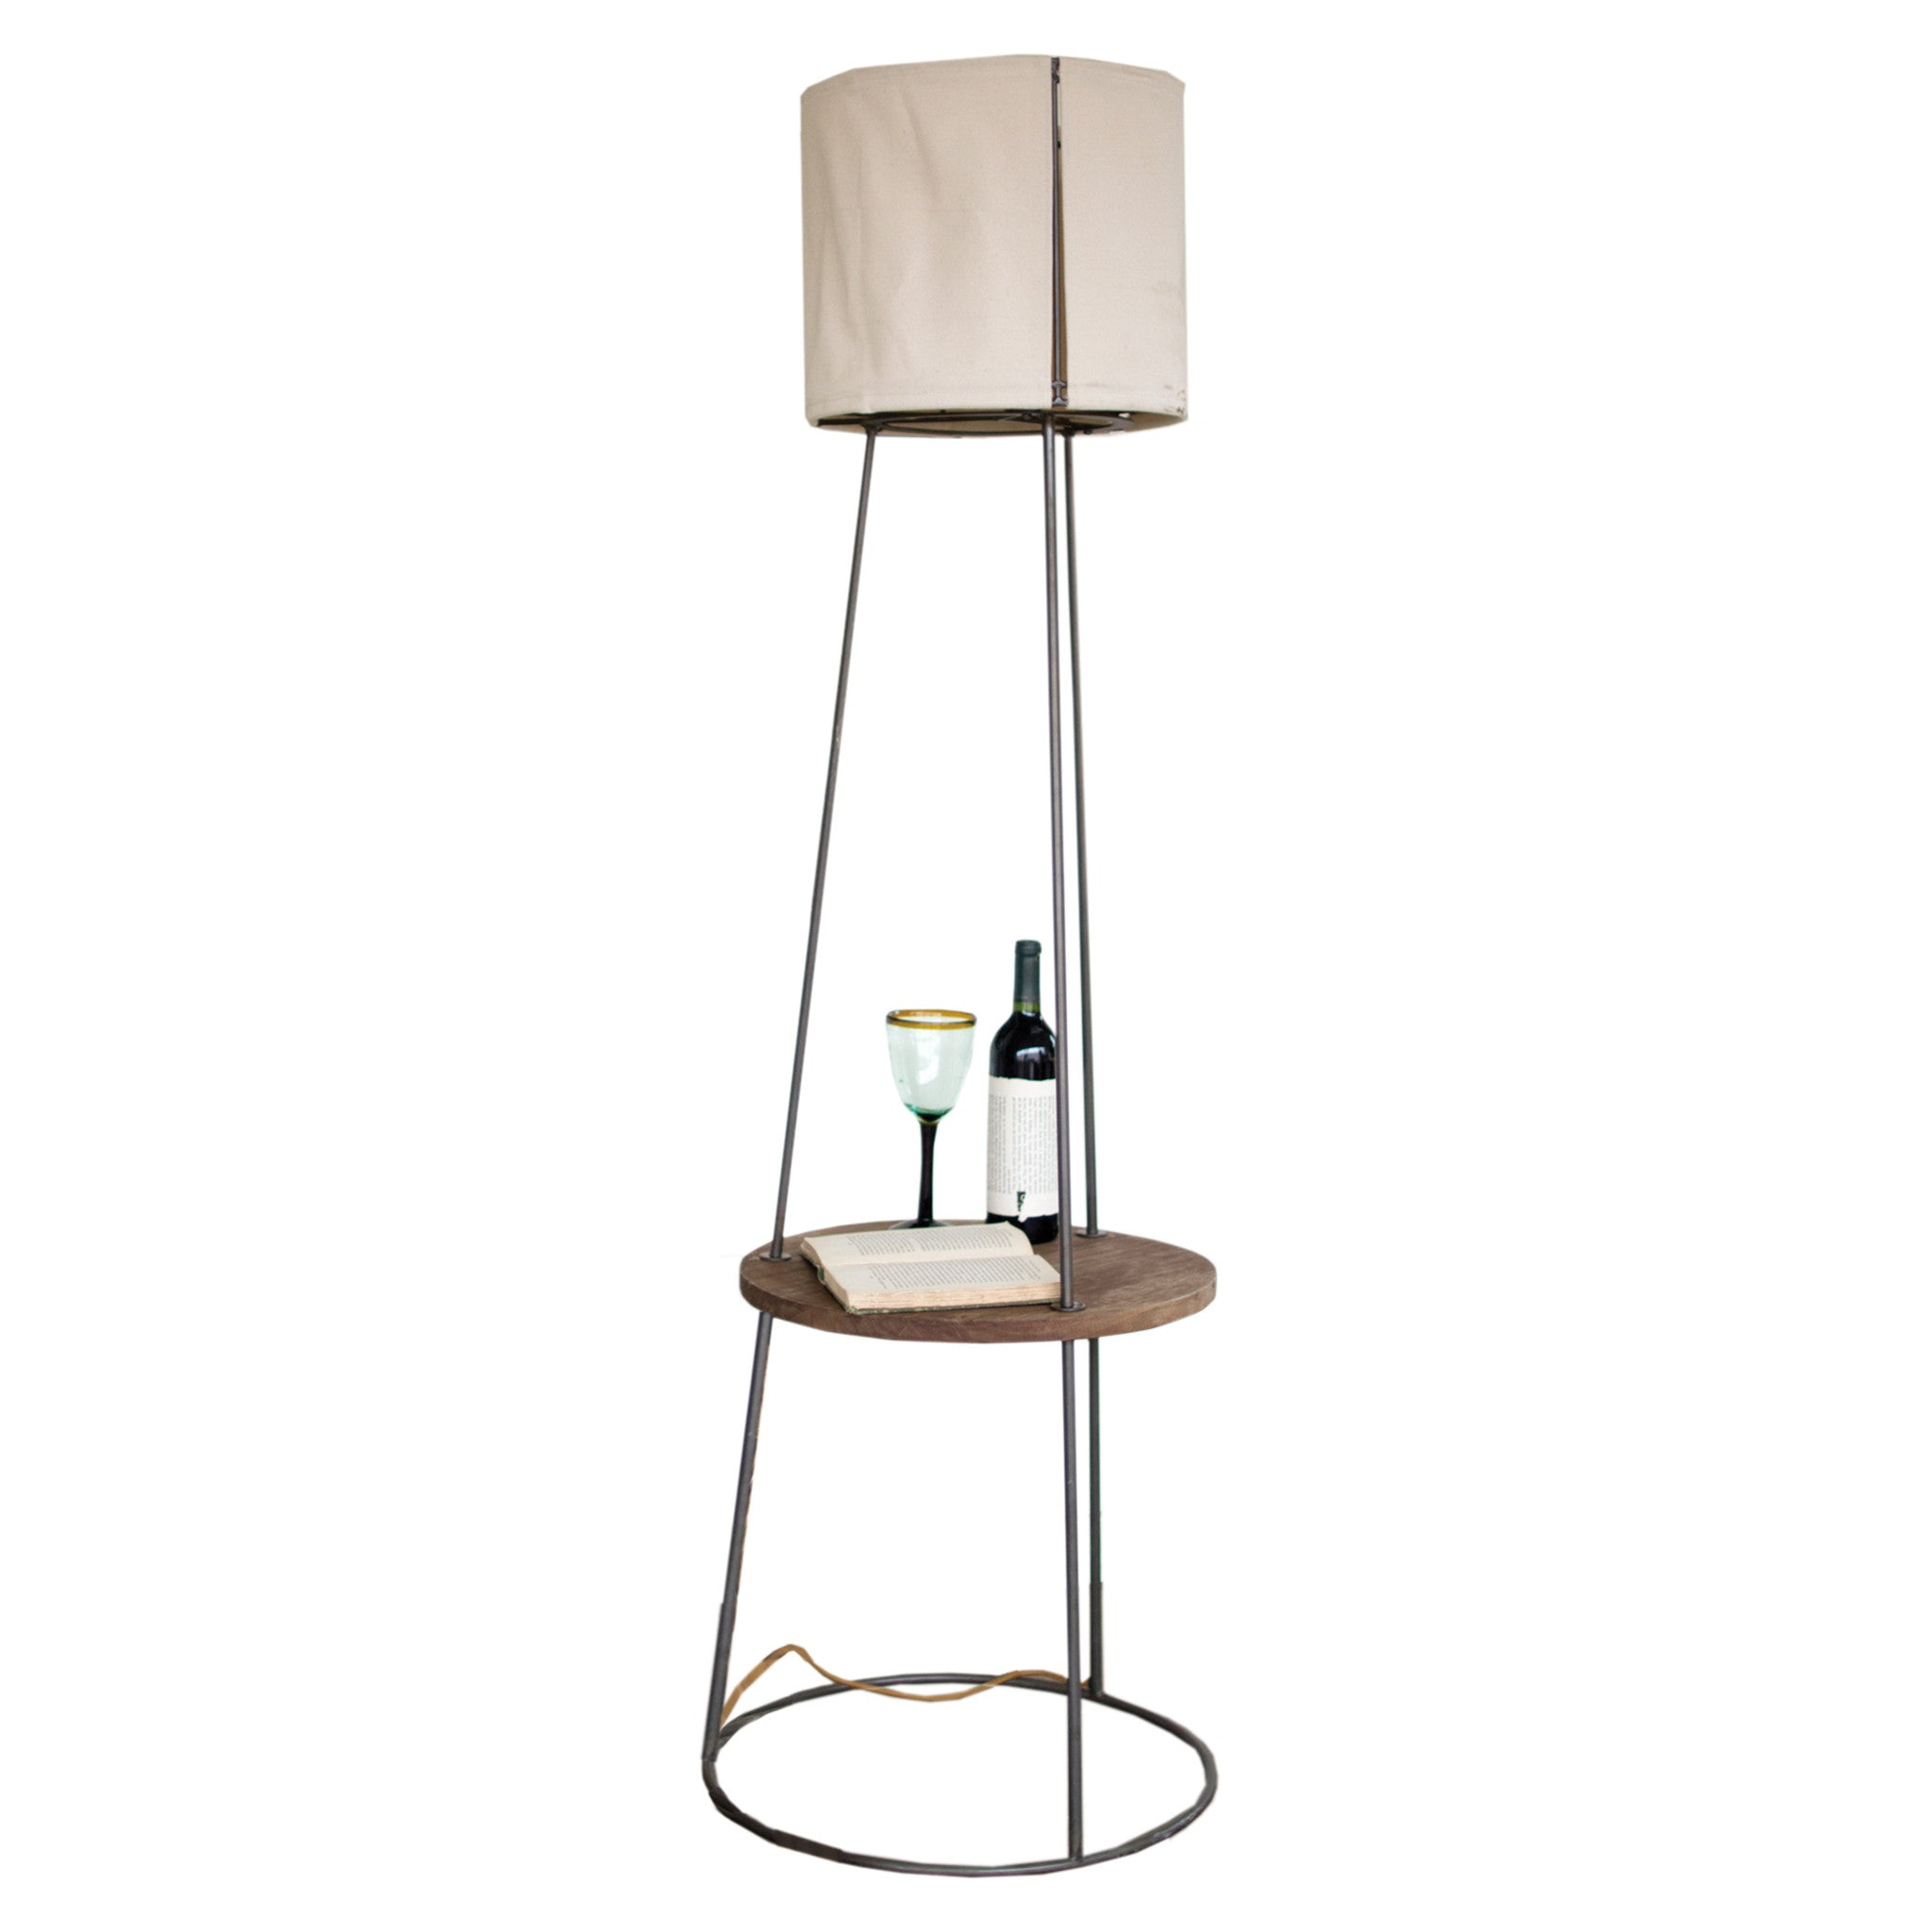 Industrial Modern Metal and Wood Floor Lamp With Side Table